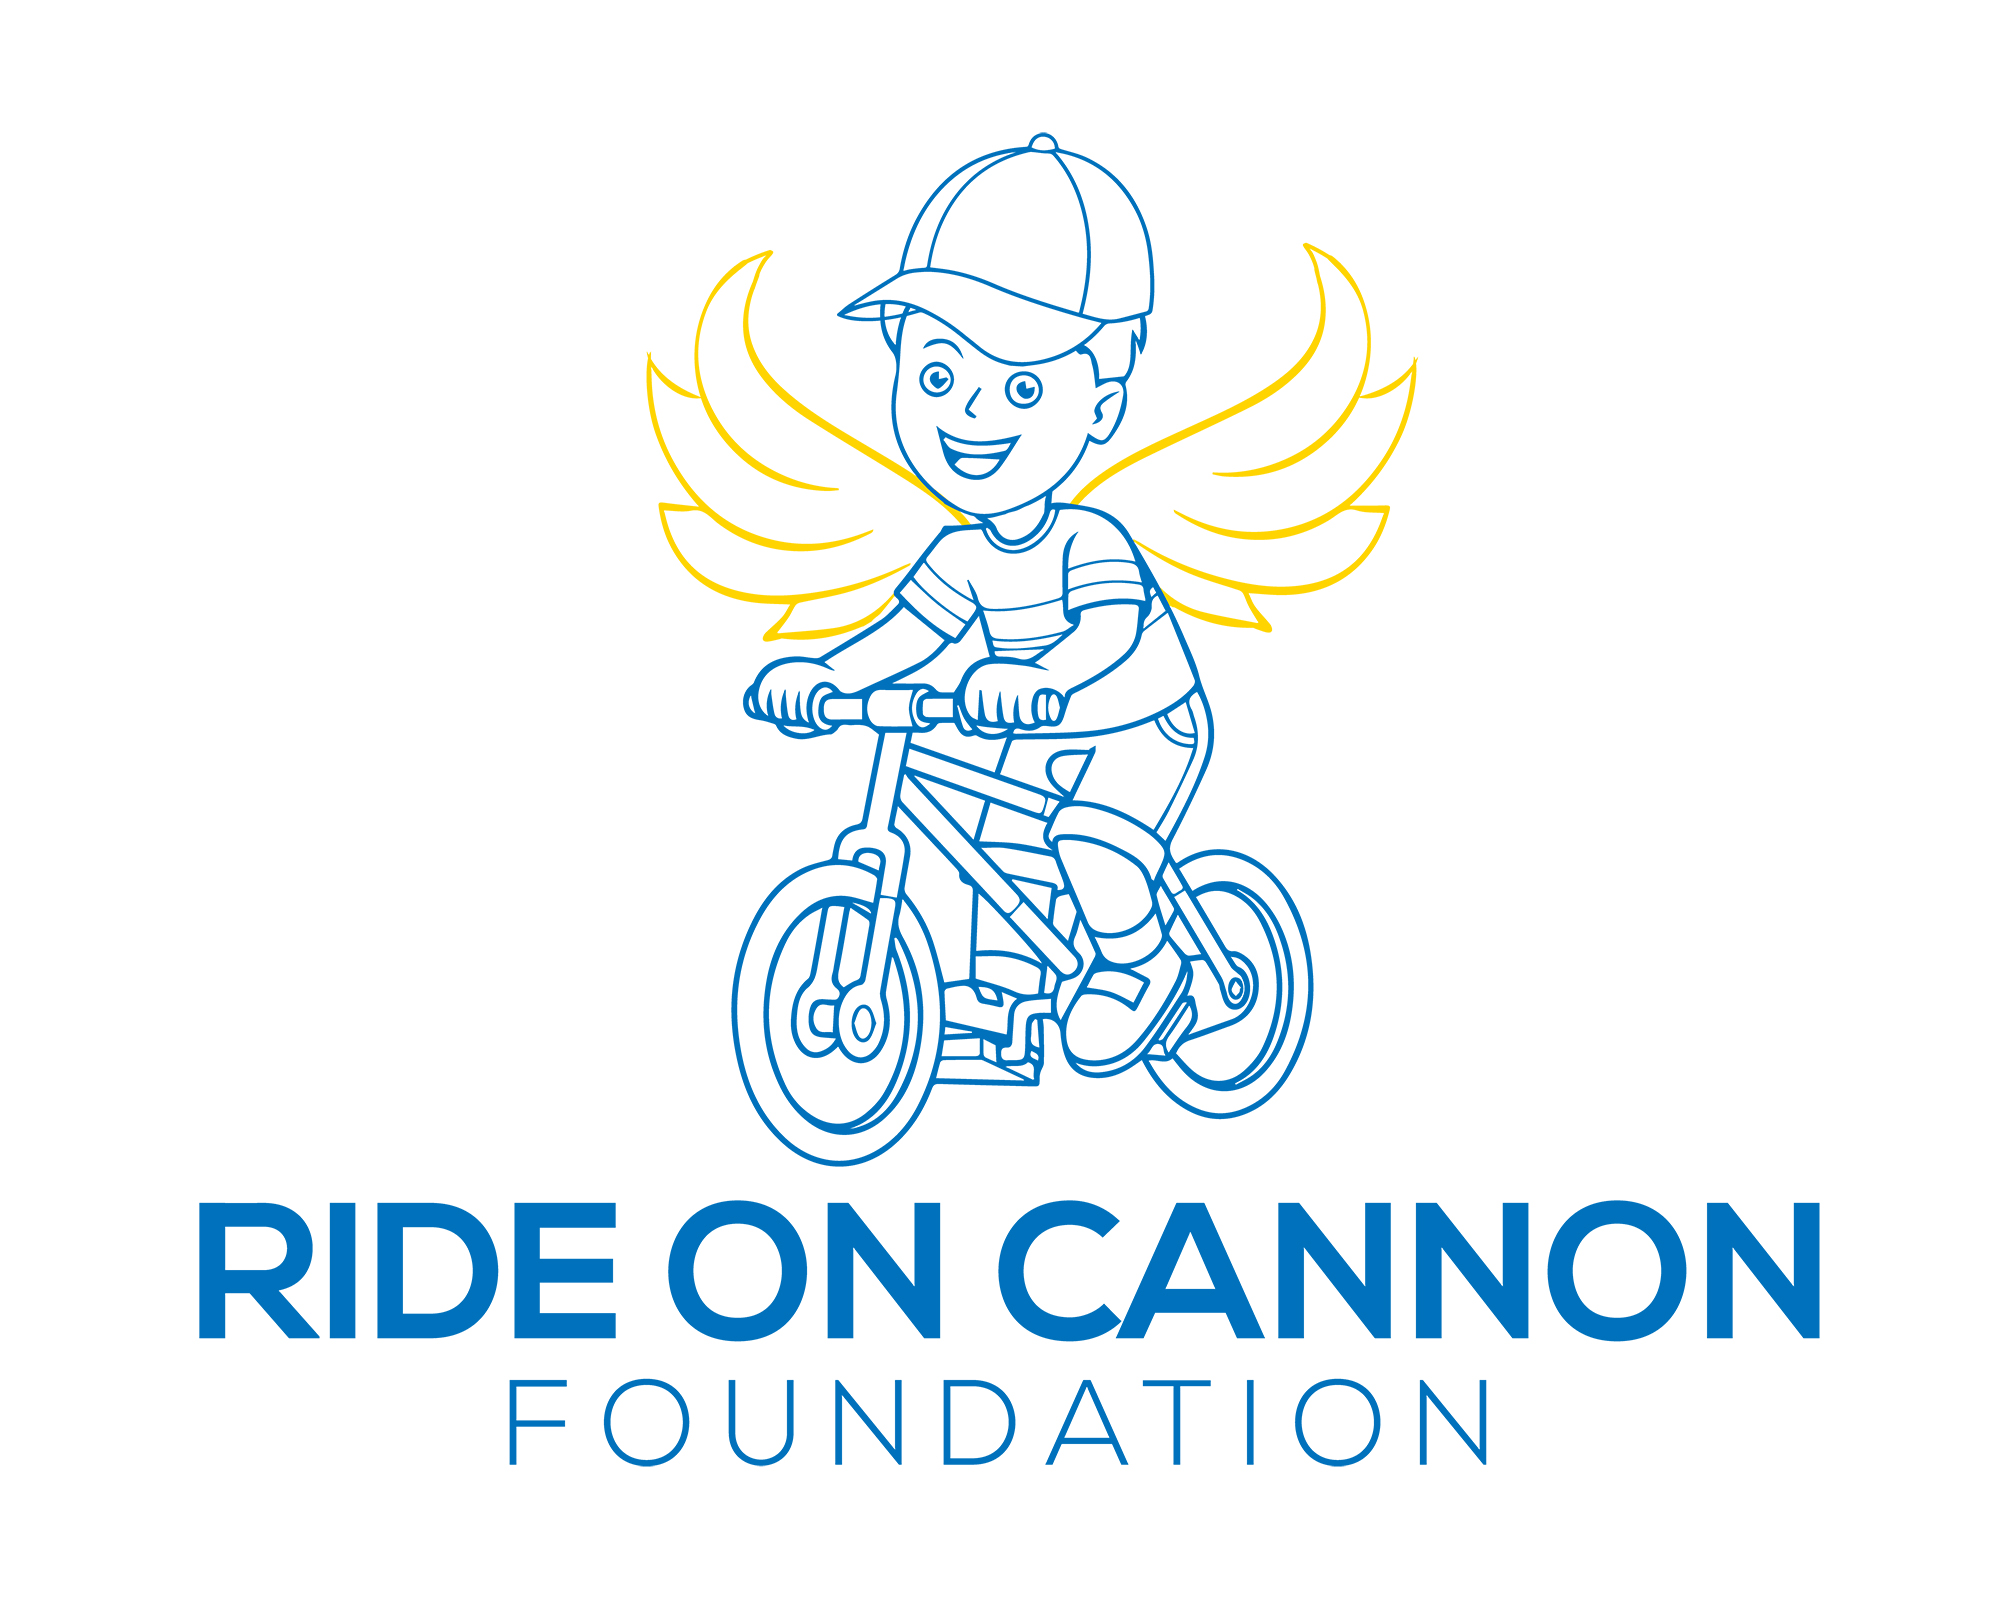 Ride On Cannon Foundation